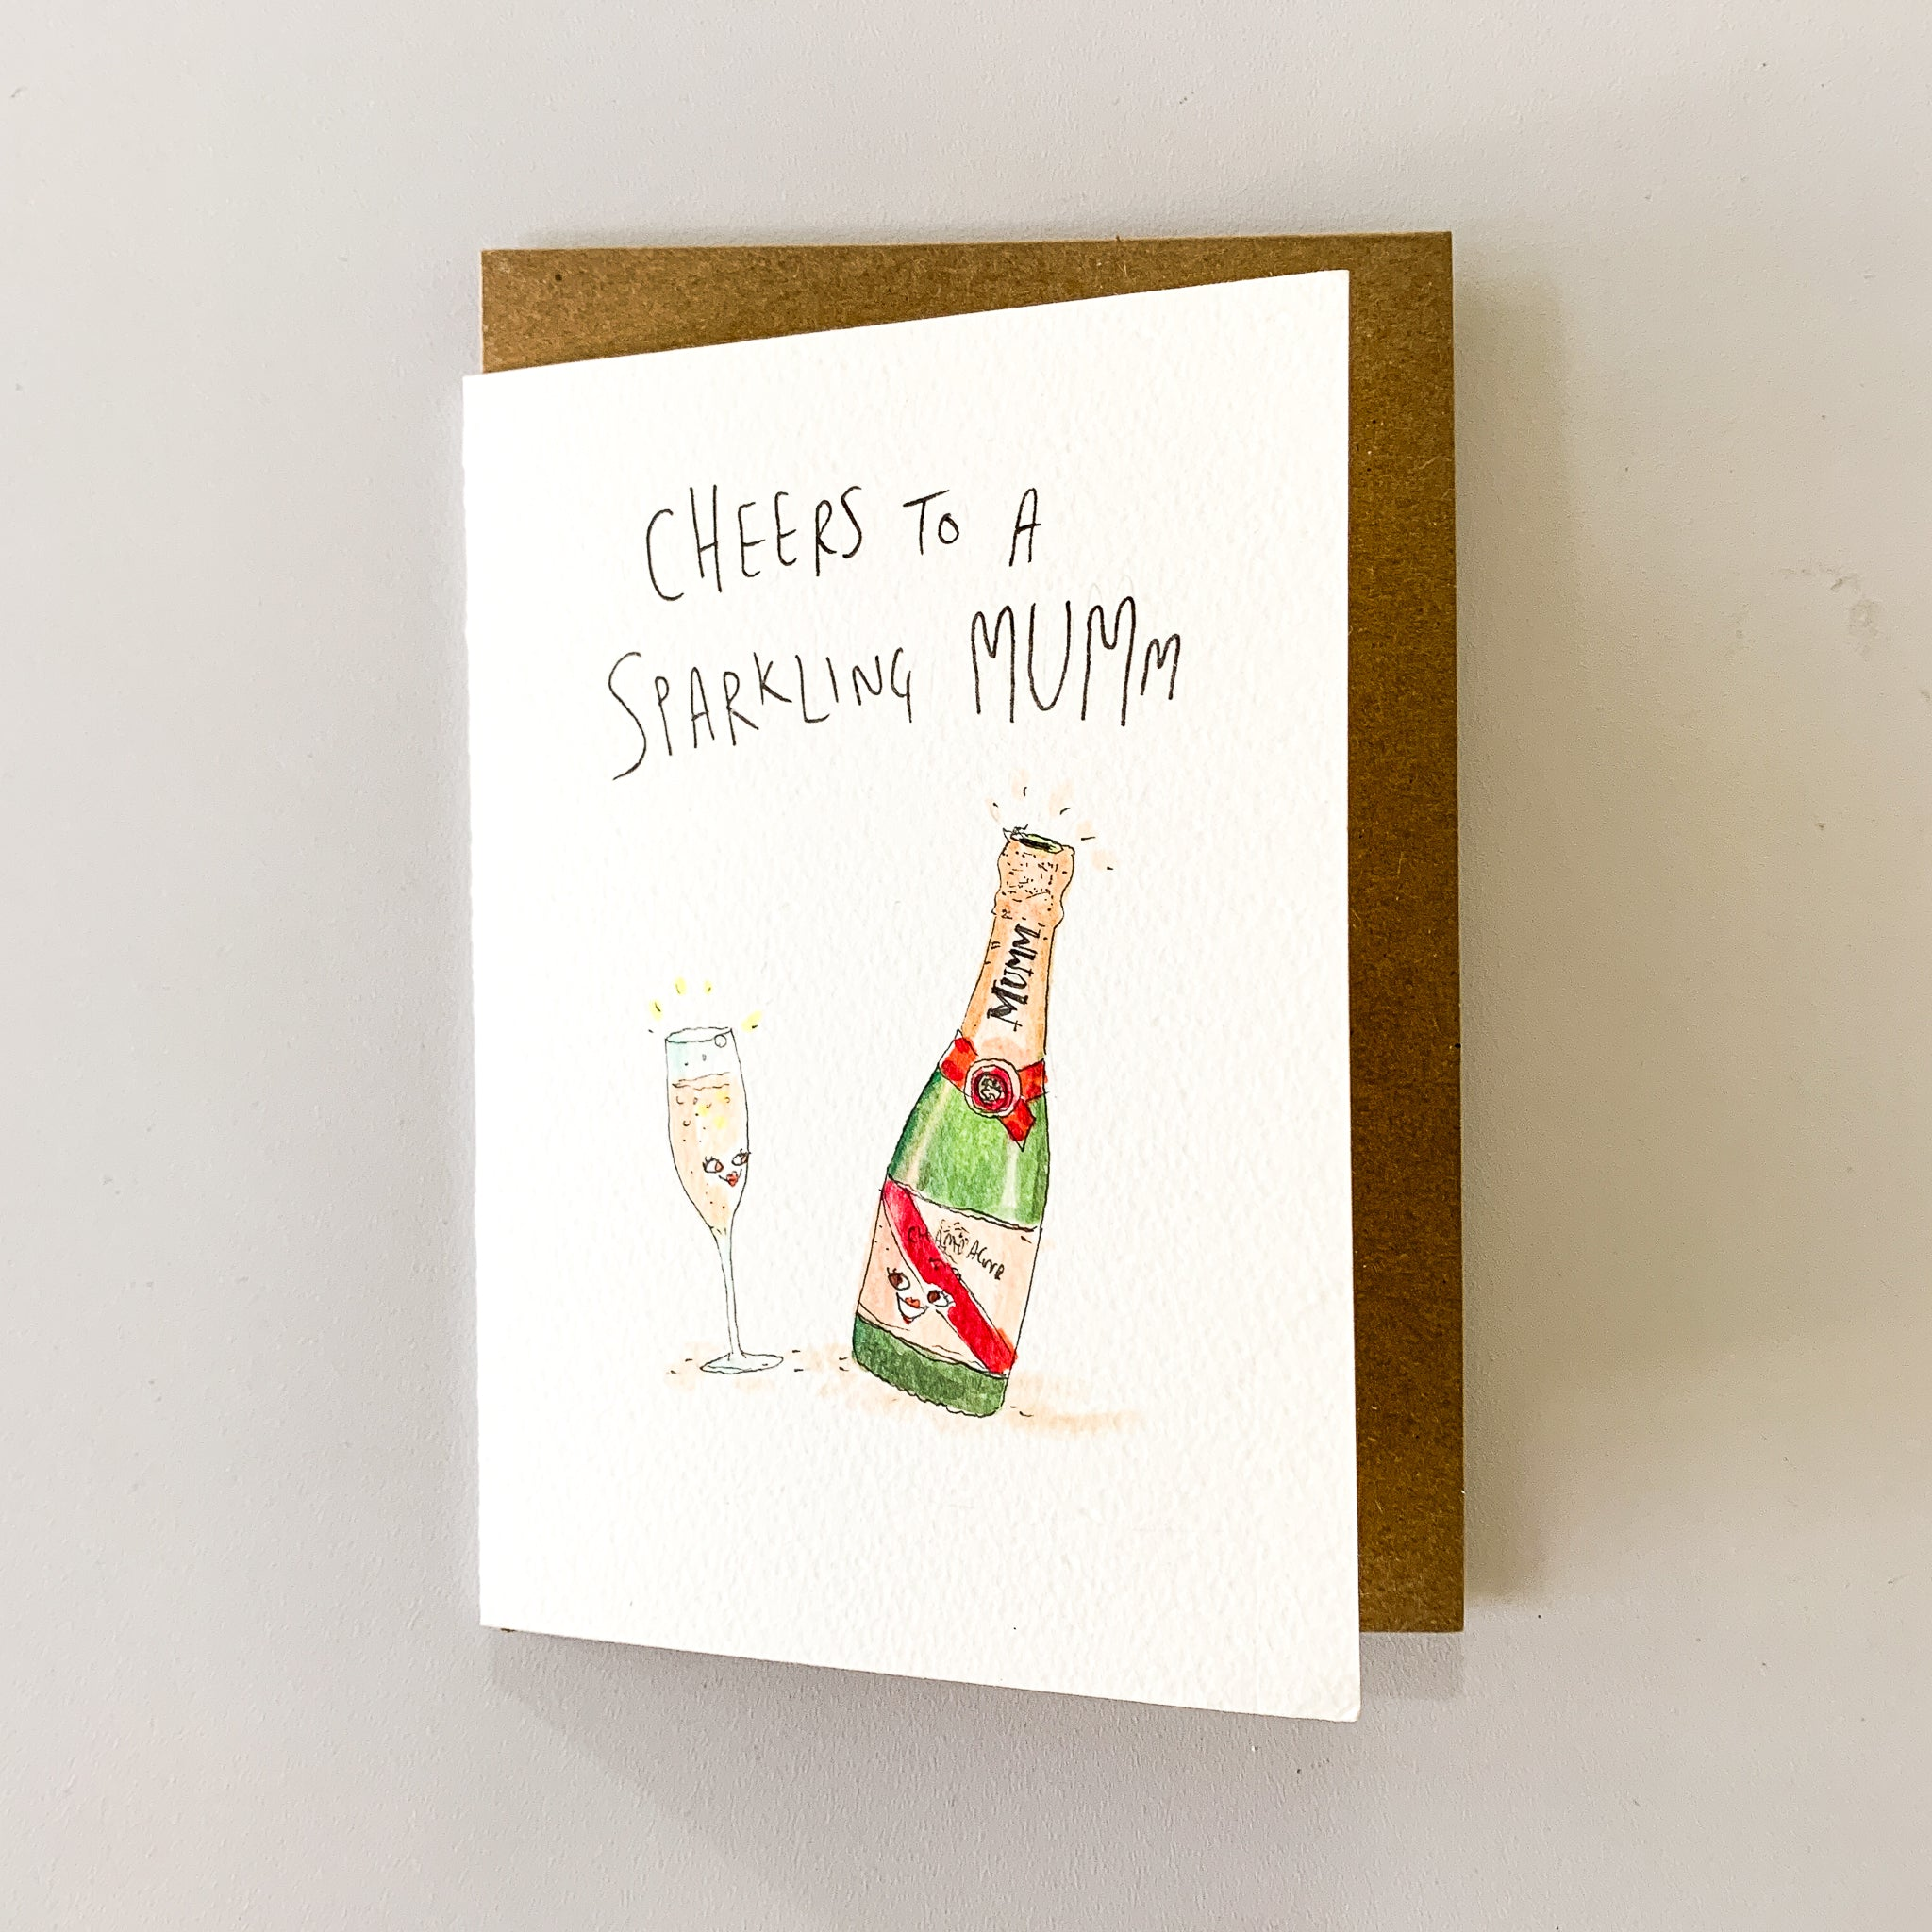 Cheers To A Sparkling Mumm - Well Drawn